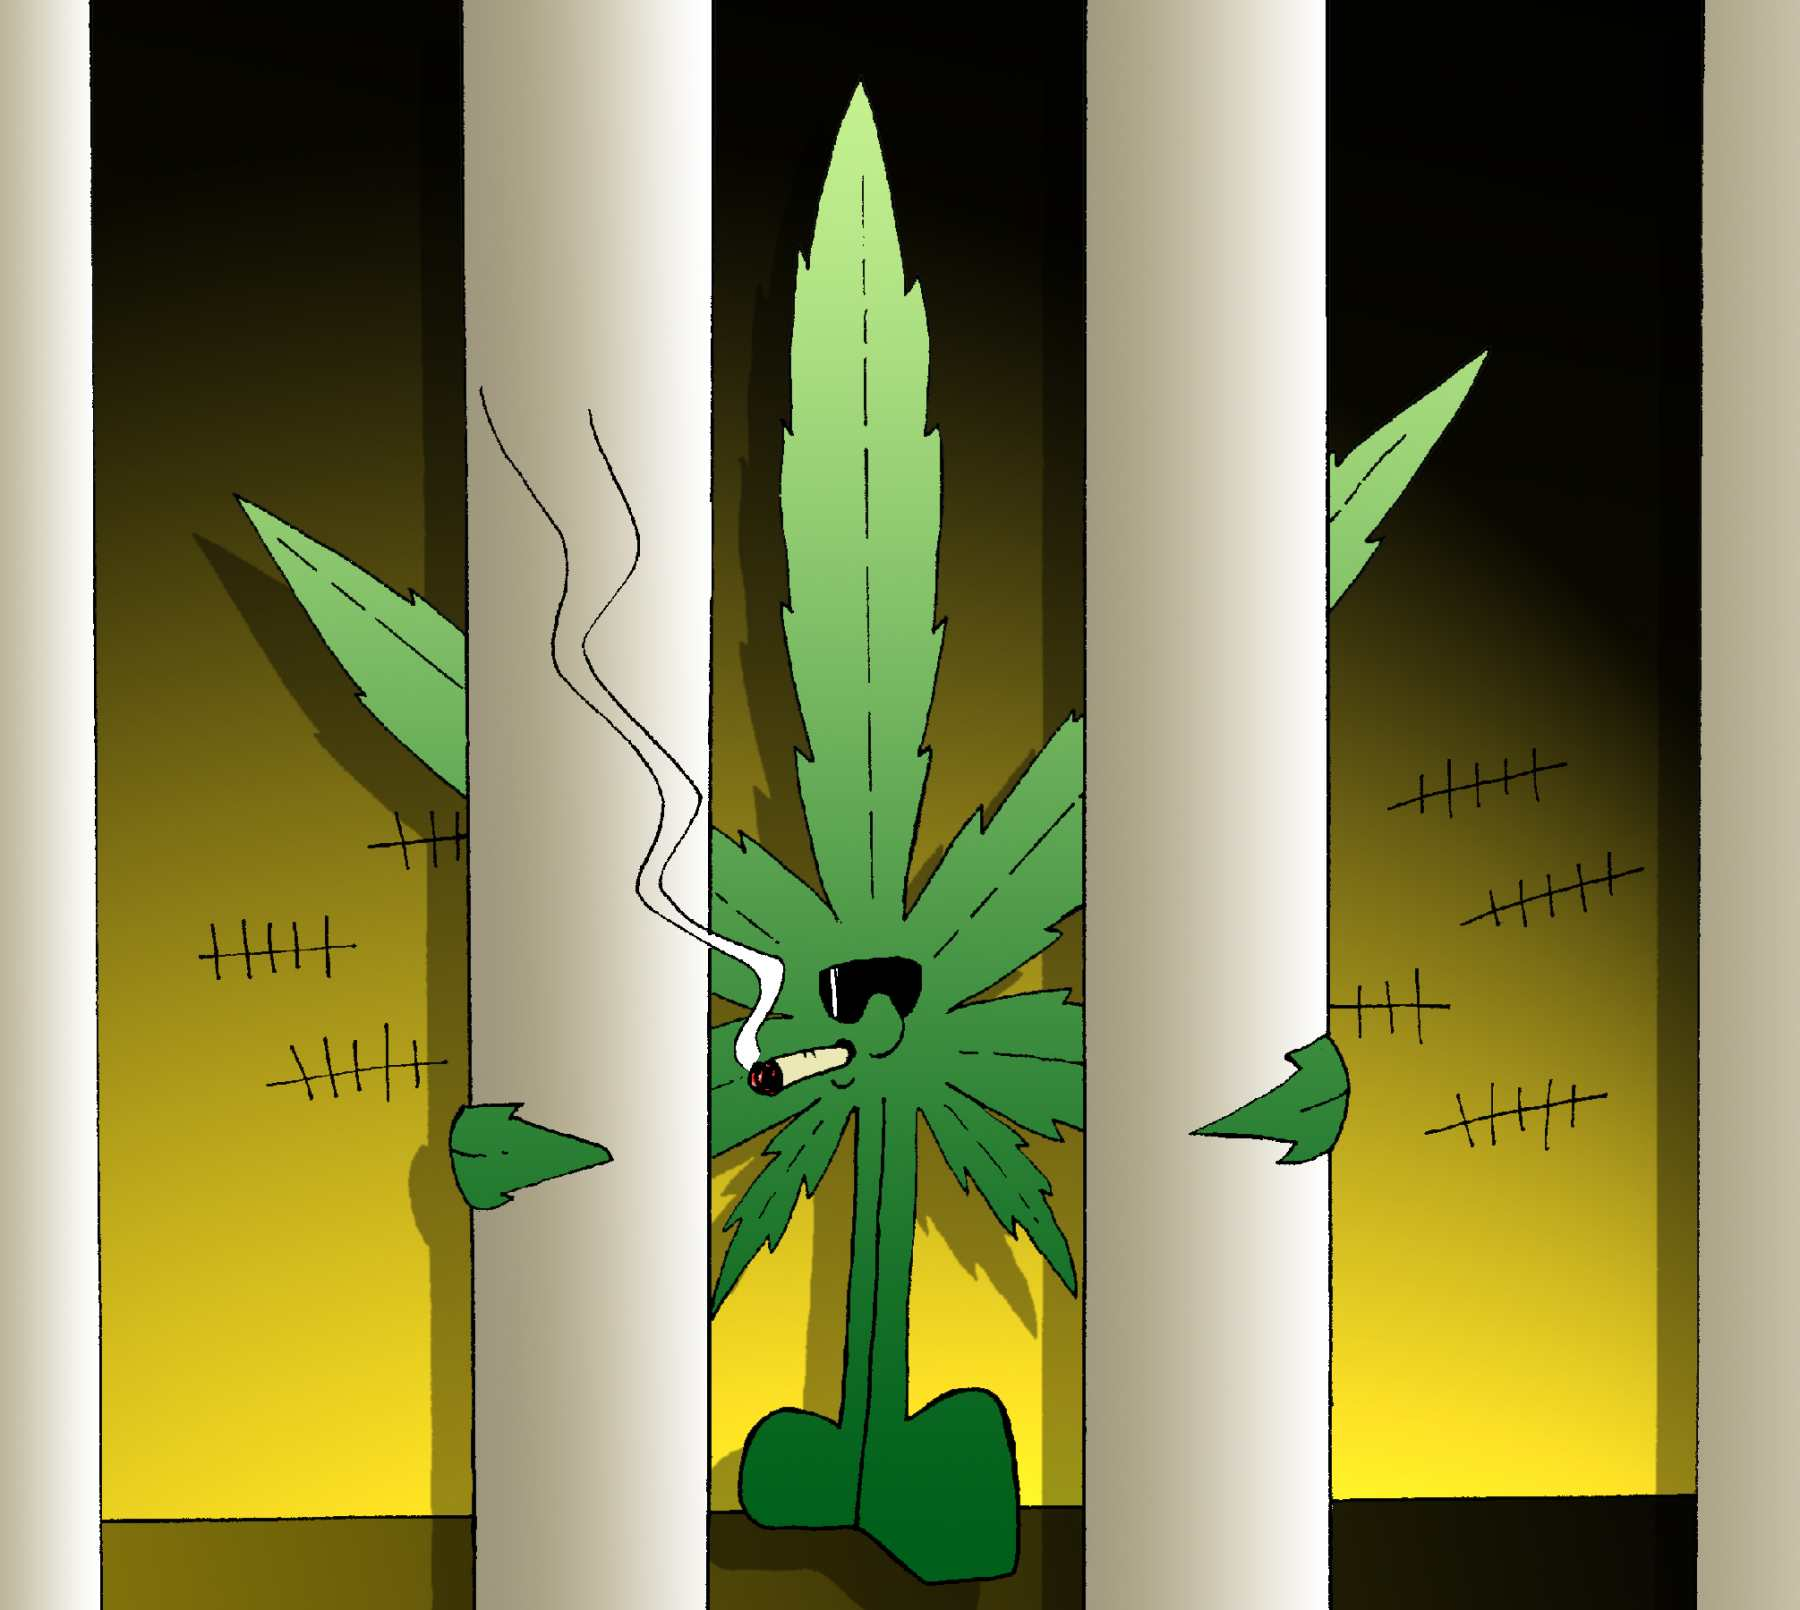 """the modern prohibition legalizing marijuana essay For marijuana legalization, lessons from prohibition garrett peck is the author of many books, including """" the prohibition hangover: alcohol in america from demon rum to cult cabernet """" may."""